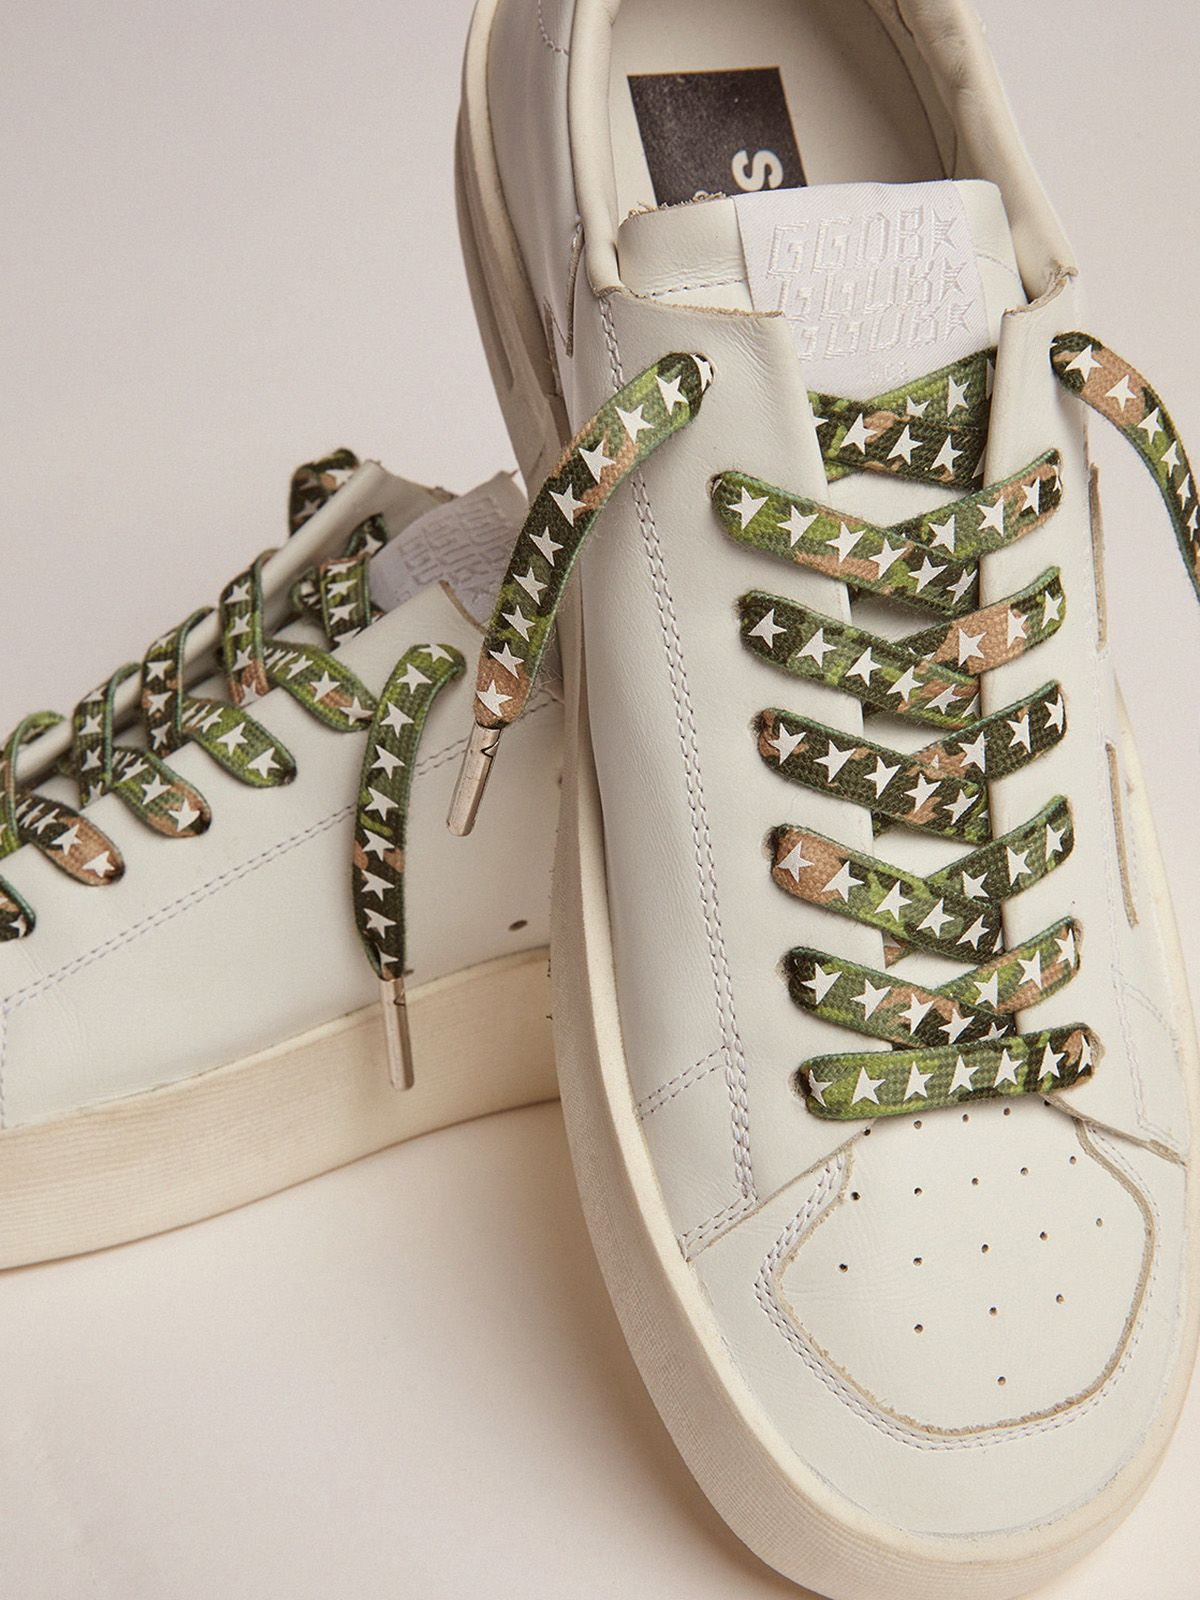 Golden Goose - Men's green camouflage laces with white stars in